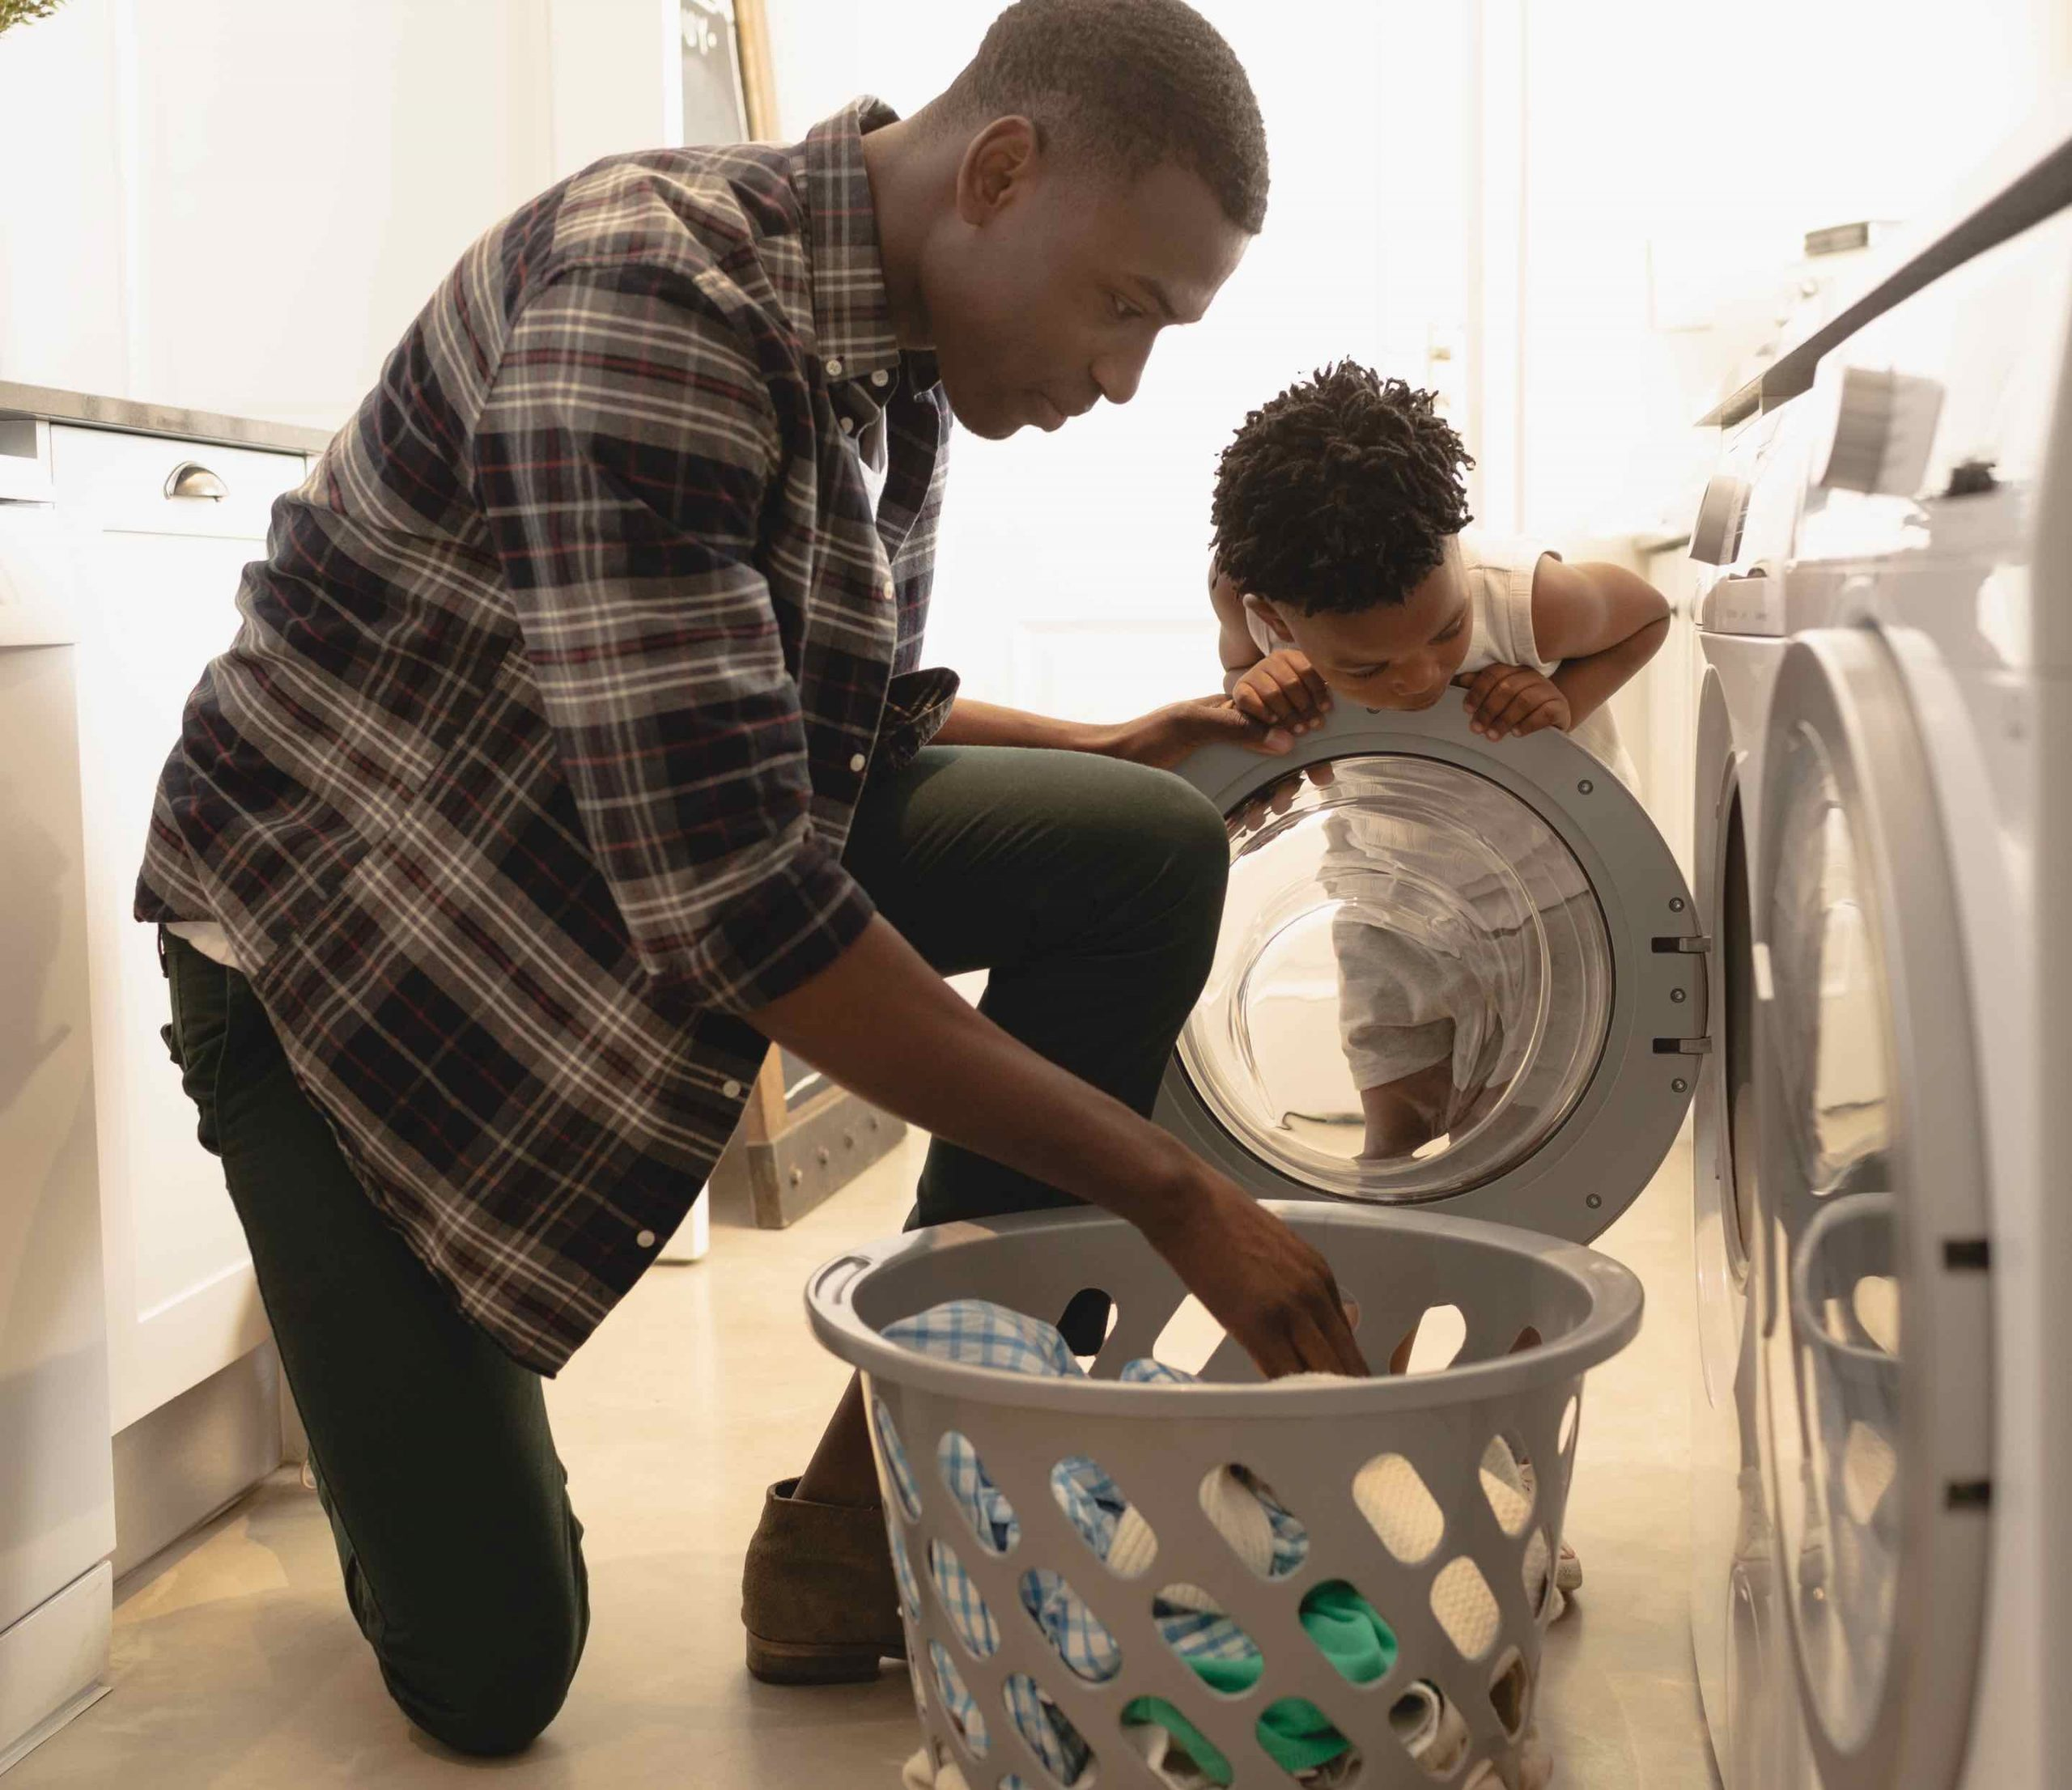 Father and son loading laundry using Plant-Based Laundry Detergent